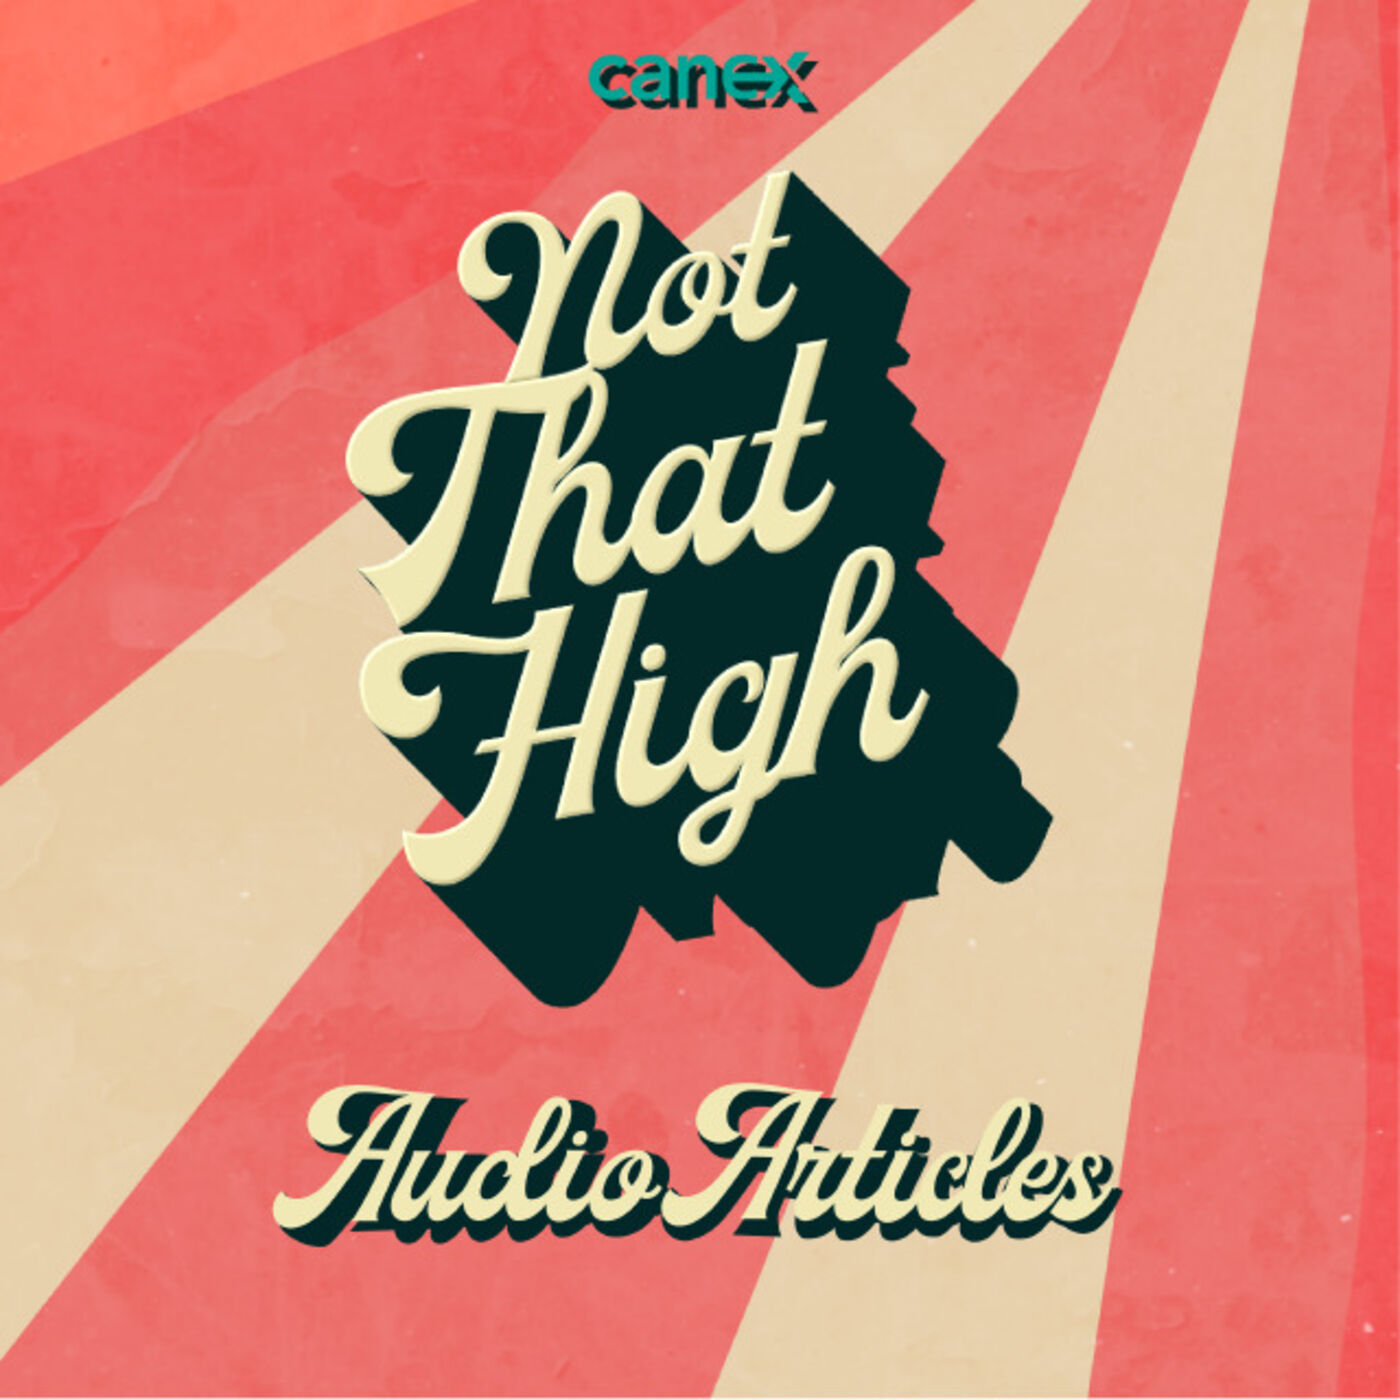 Not That High: Audio Articles -Over 1 million Patients could avoid arrest for Cannabis, with CanCard